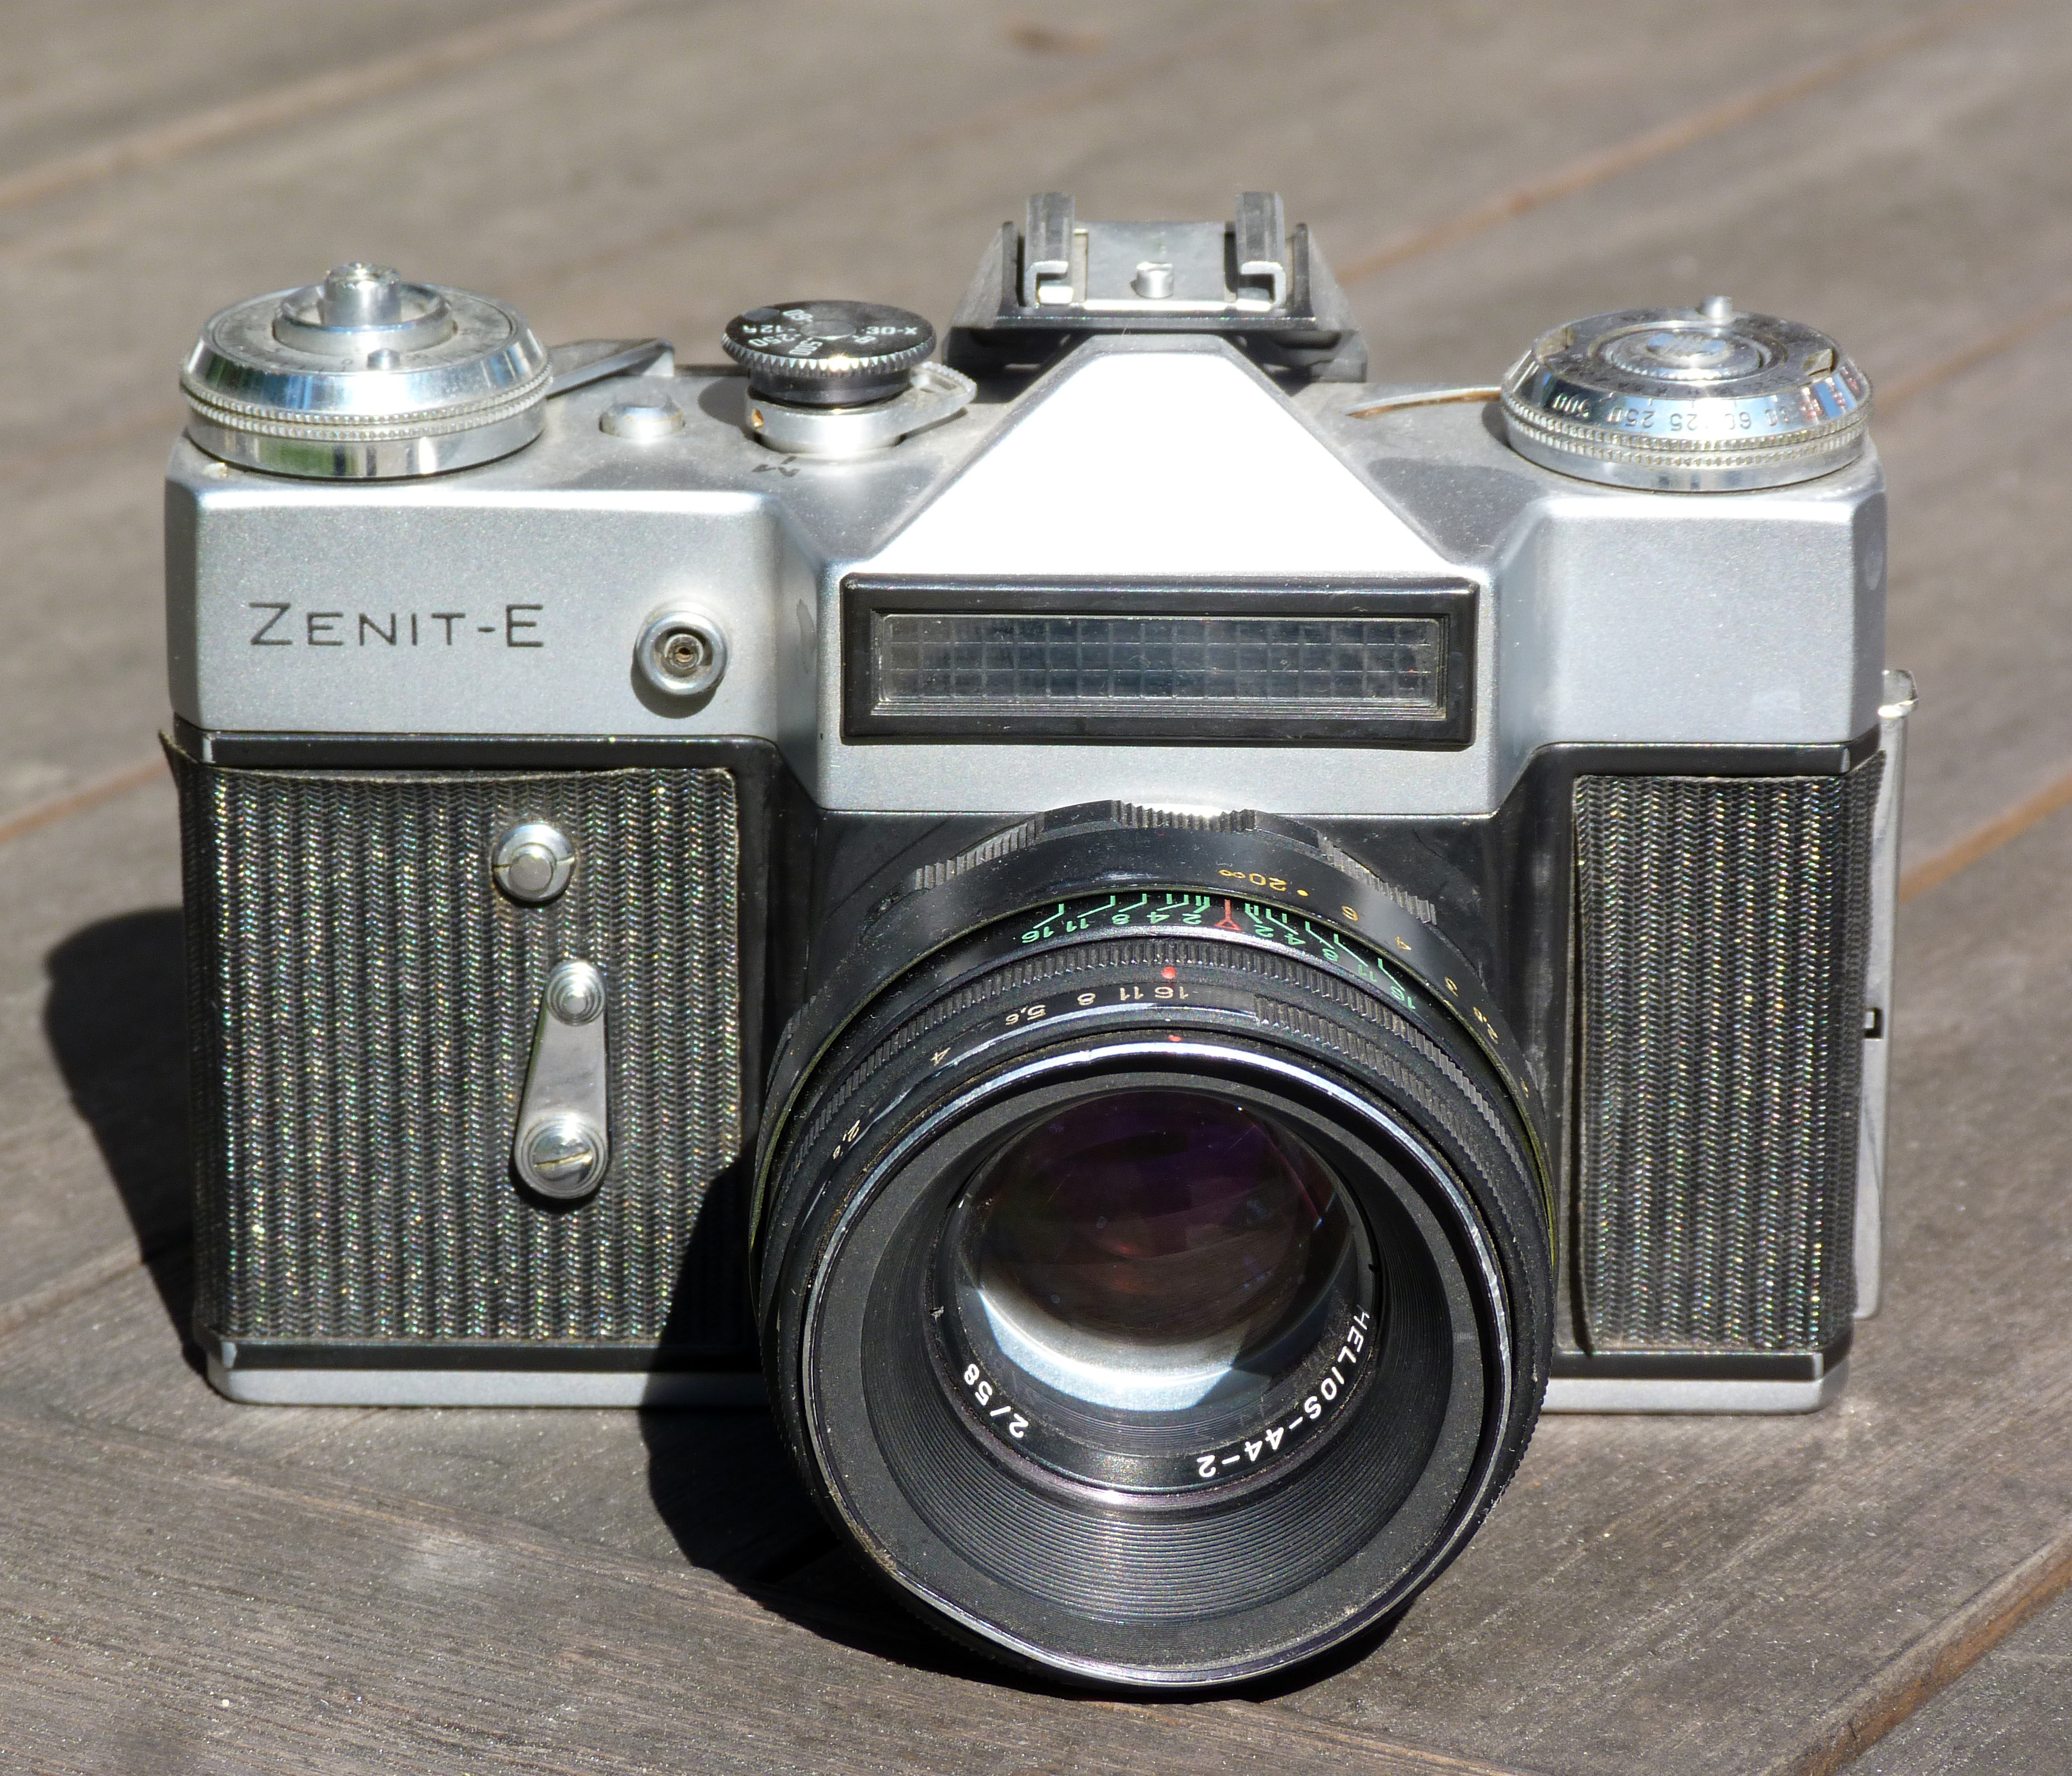 Zenit - E camera with Helios 44-2 lens